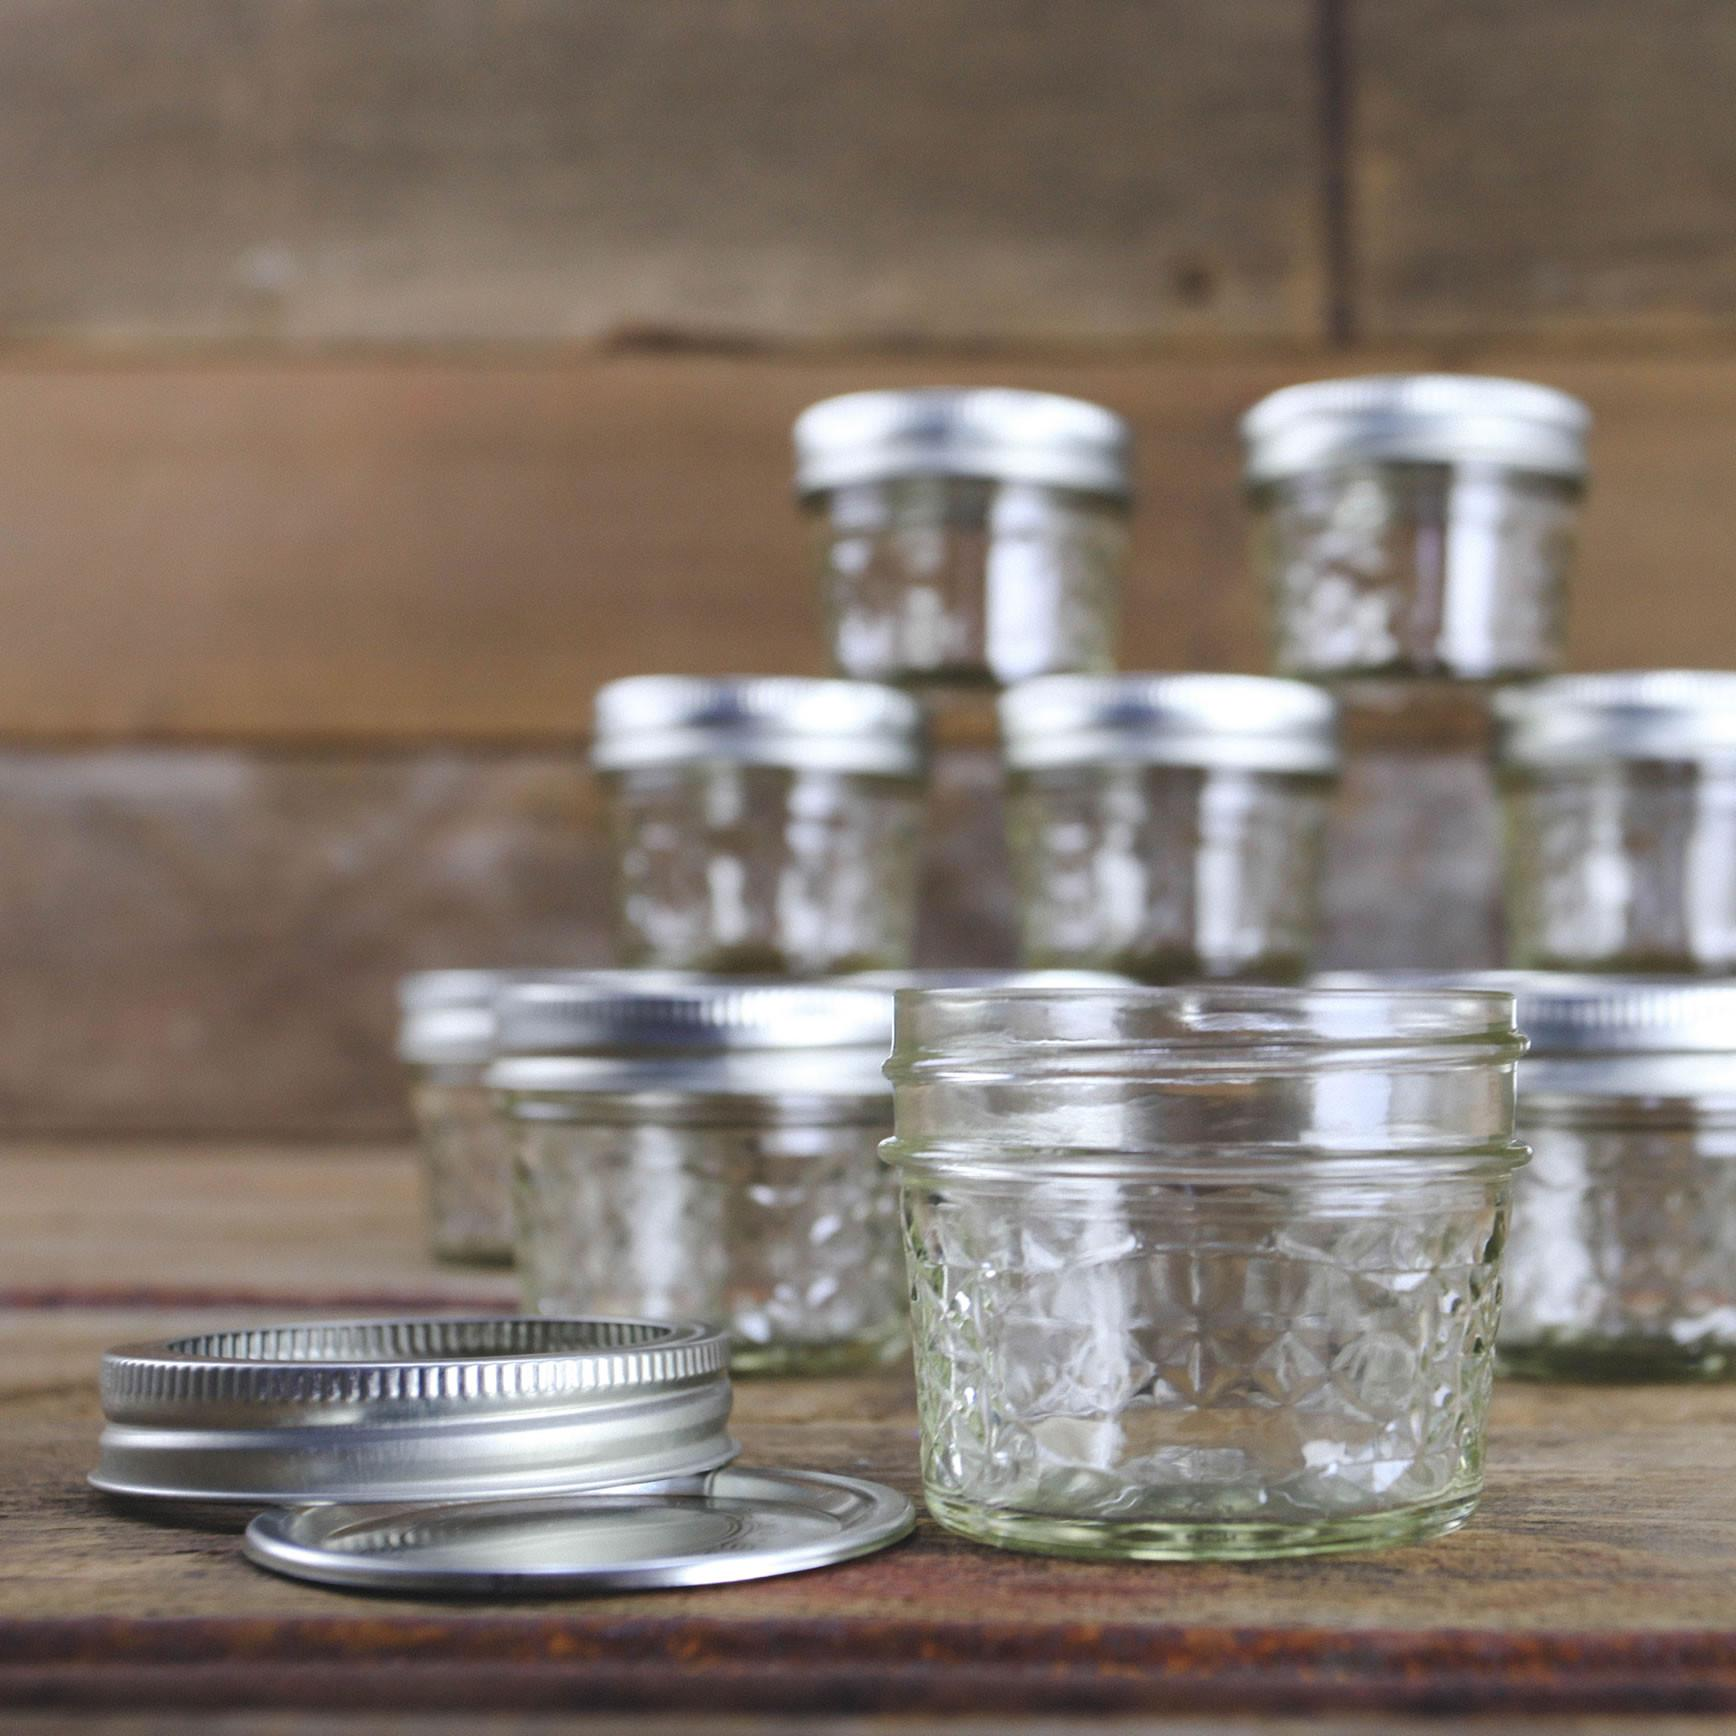 Amazon.com: Ball Mason 4oz Quilted Jelly Jars with Lids and Bands ... : quilted jam jars - Adamdwight.com